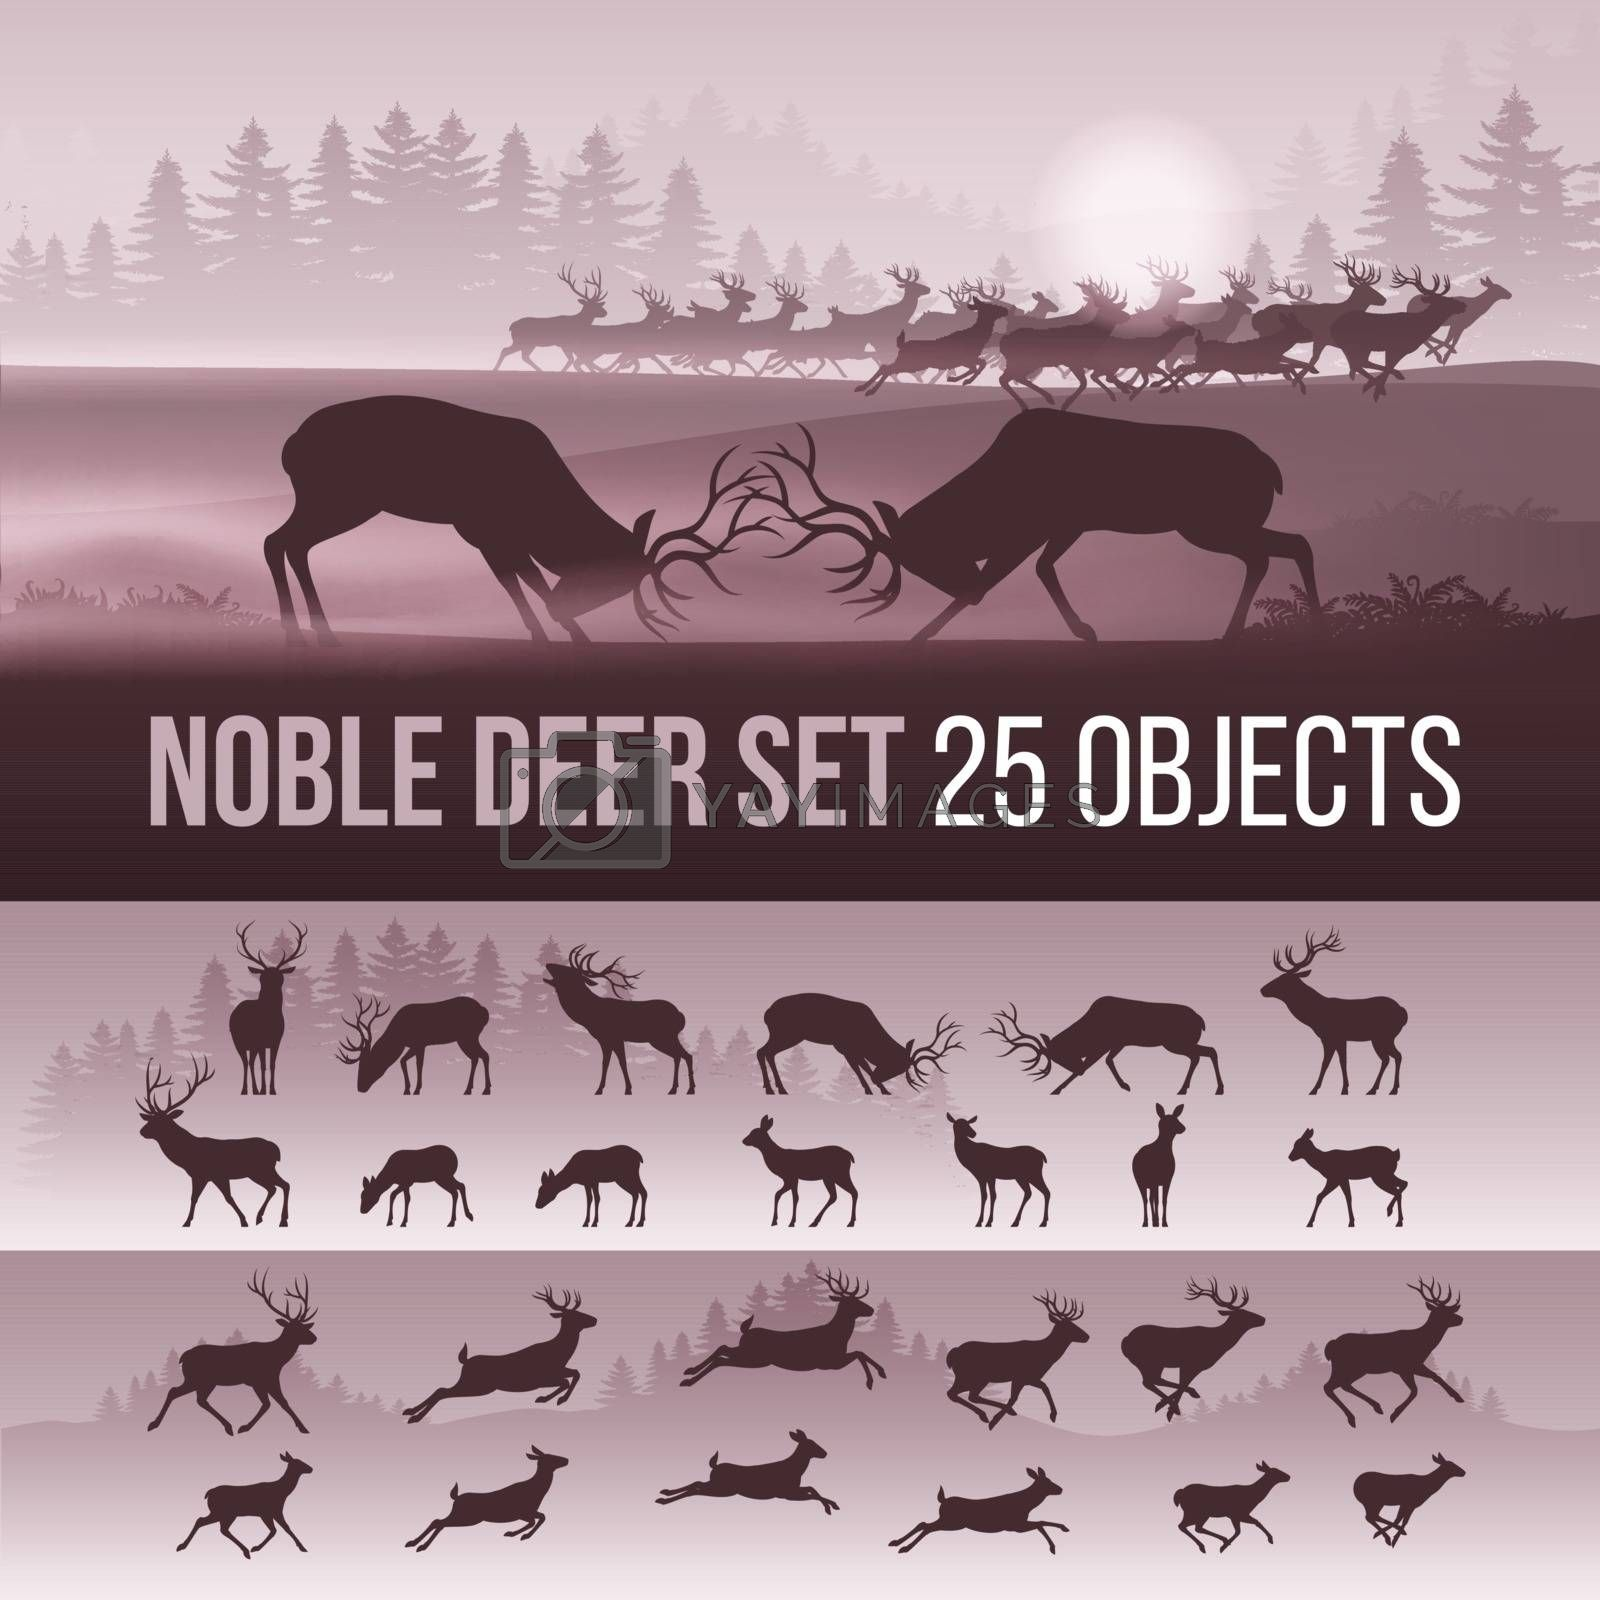 Wildlife Foggy Coniferous Forest Background with Trees and Deer Silhouettes